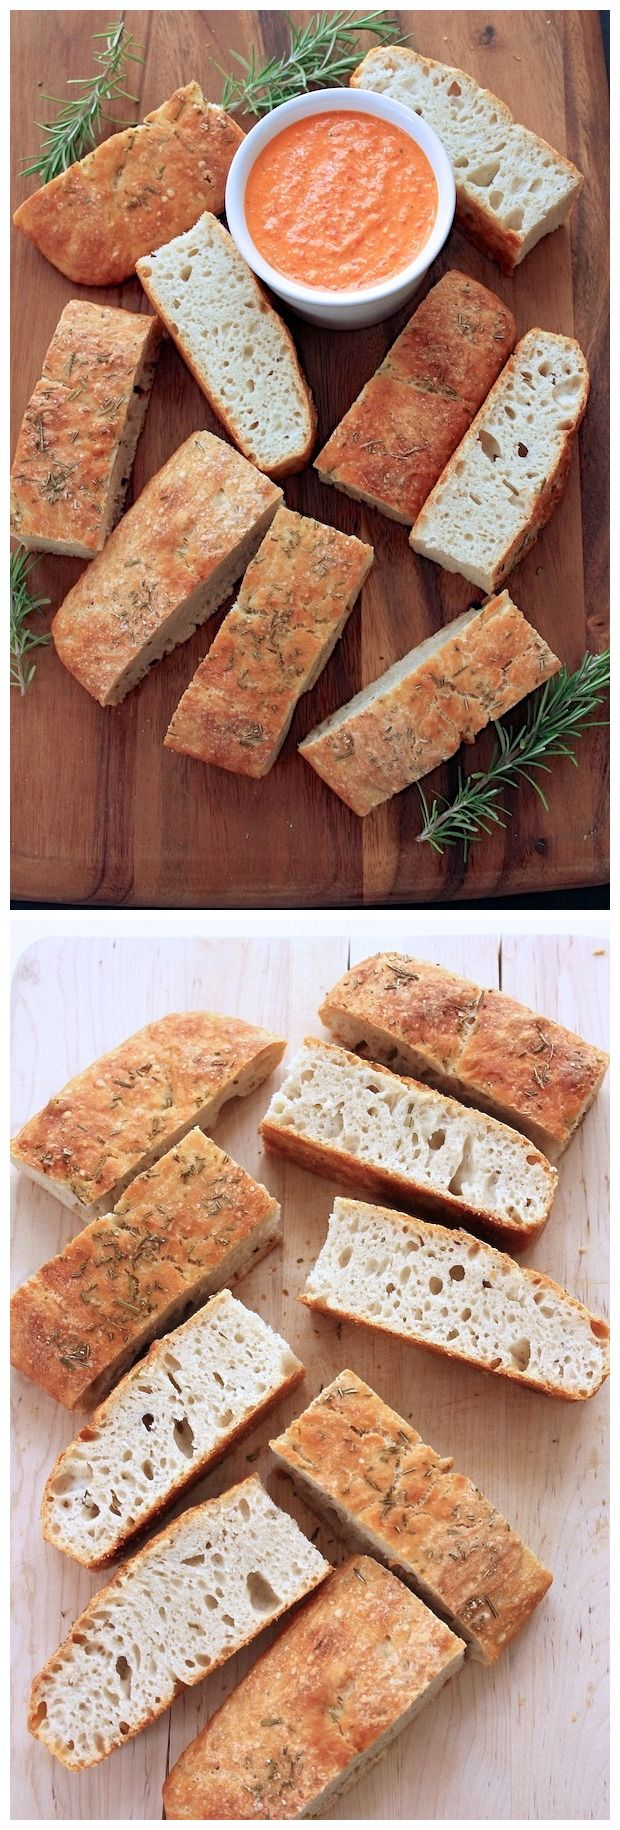 No Knead Foccacia with a Roasted Red Pepper, Feta and Walnut Dipping Sauce